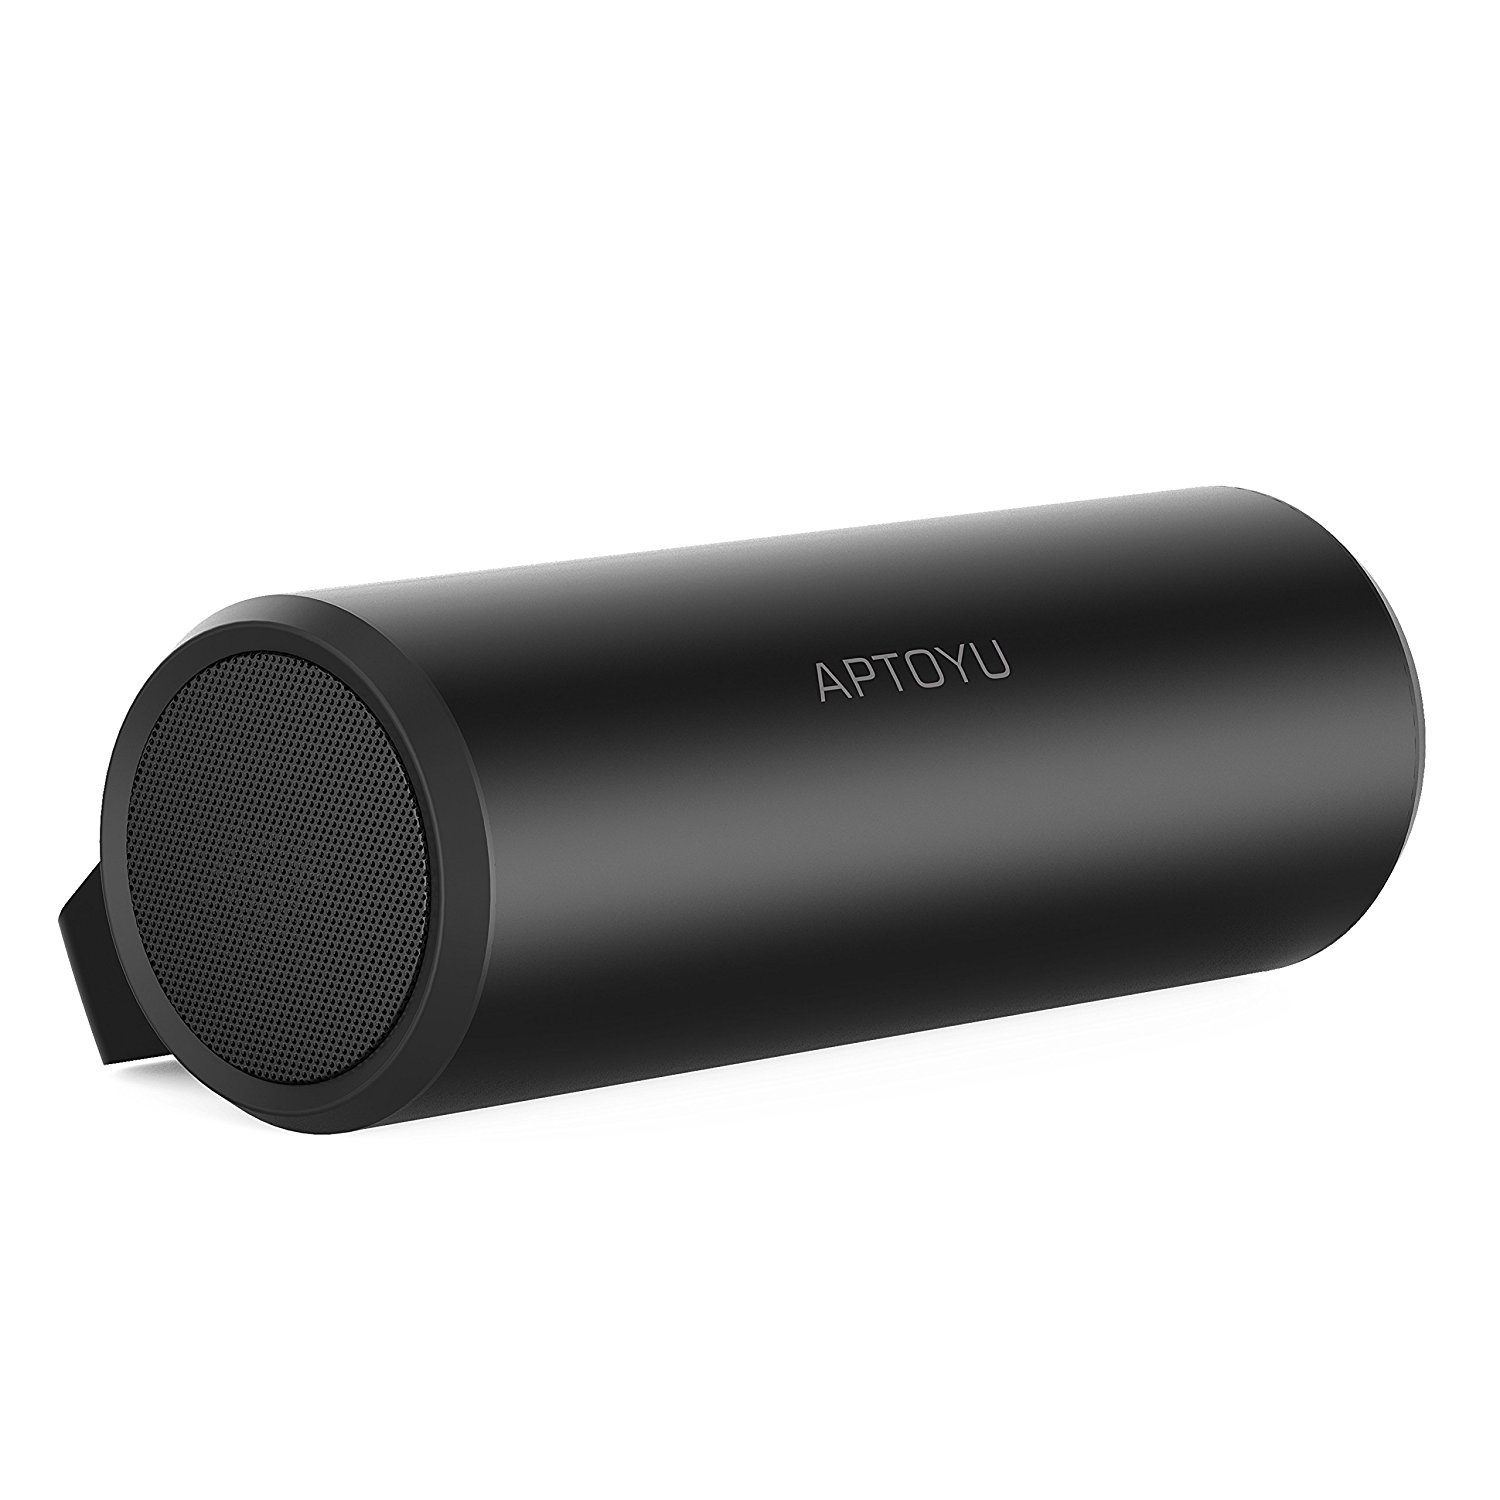 Aptoyu Altoparlante Bluetooth Altoparlante Esterno Speaker Senza Fili Cassa Bluetooth Audio di Alta Qualità 10W con Microfono Incorporato e Vivavoce e Raggio di Connessione Bluetooth di 10 Metri, 20 Ore di Riproduzione , Scheda TF Supporta ,Porta di ricarica USB, Ricaricabile, Ingresso Aux-In, Compatibilità per iPhone, iPad, Samsung, Huawei, Honor, Nexus, Laptop e Altri